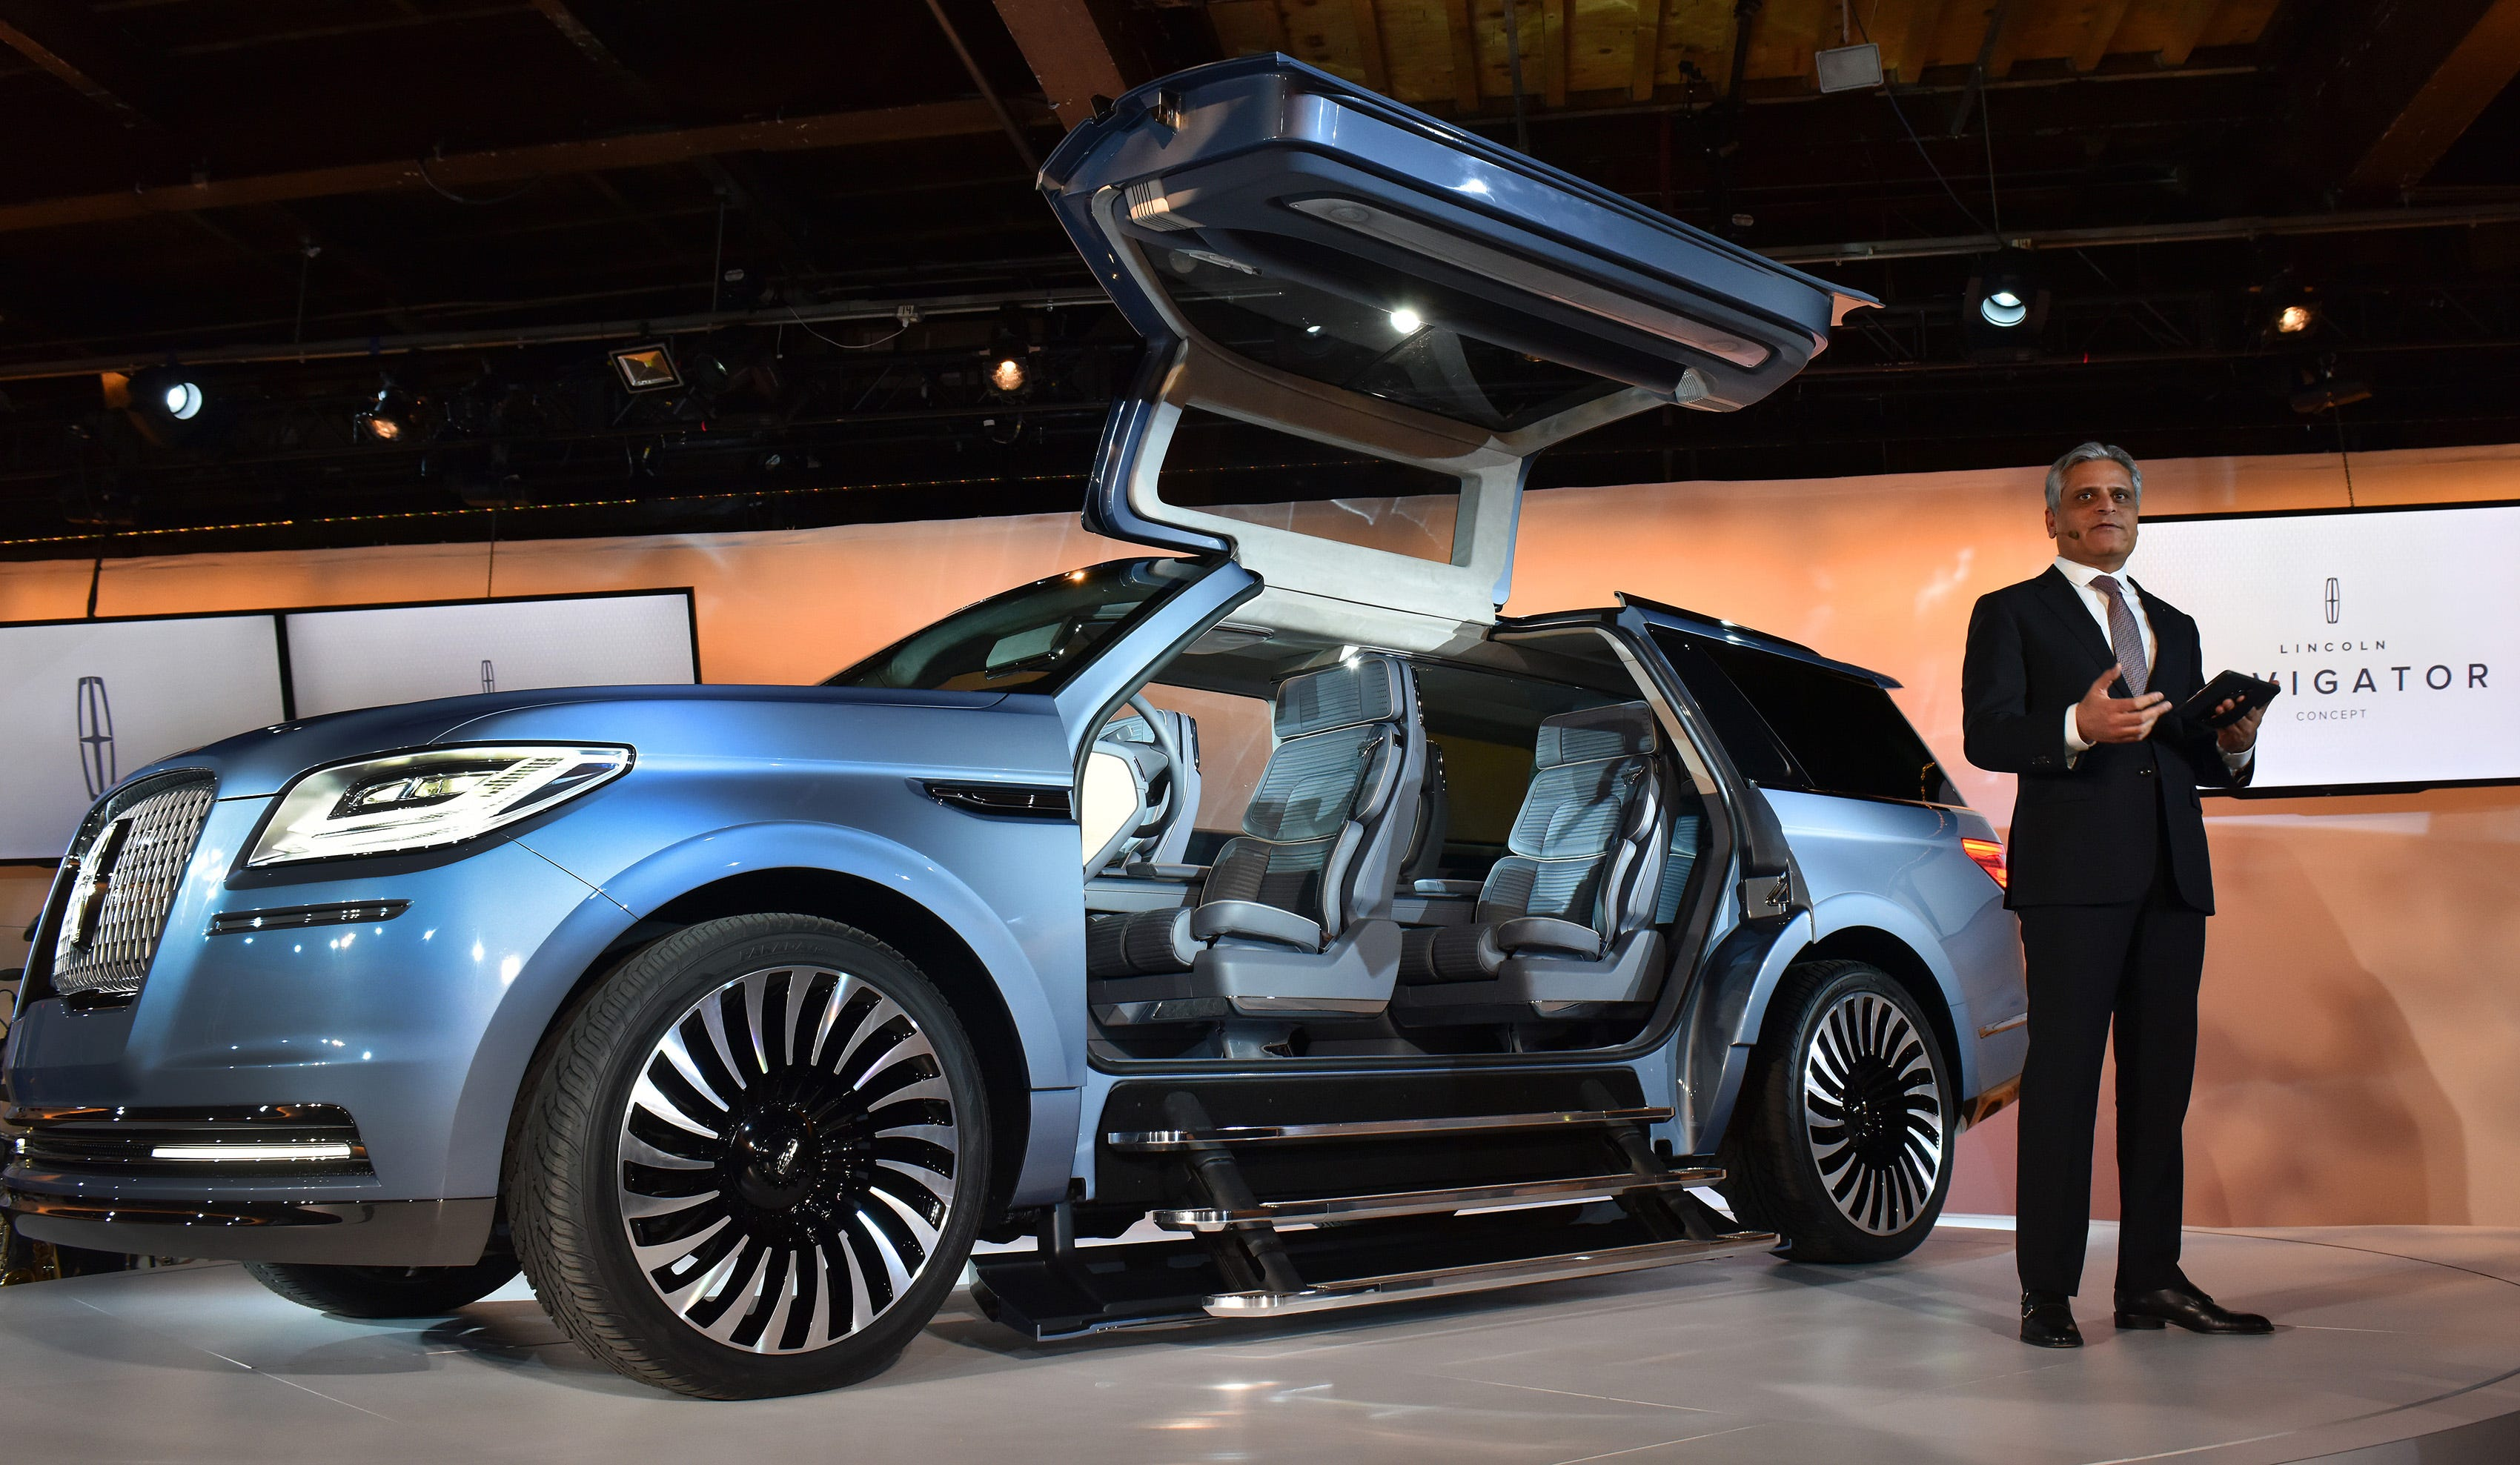 sc 1 st  Detroit News & Lincoln debuts Navigator Concept with gull-wing doors